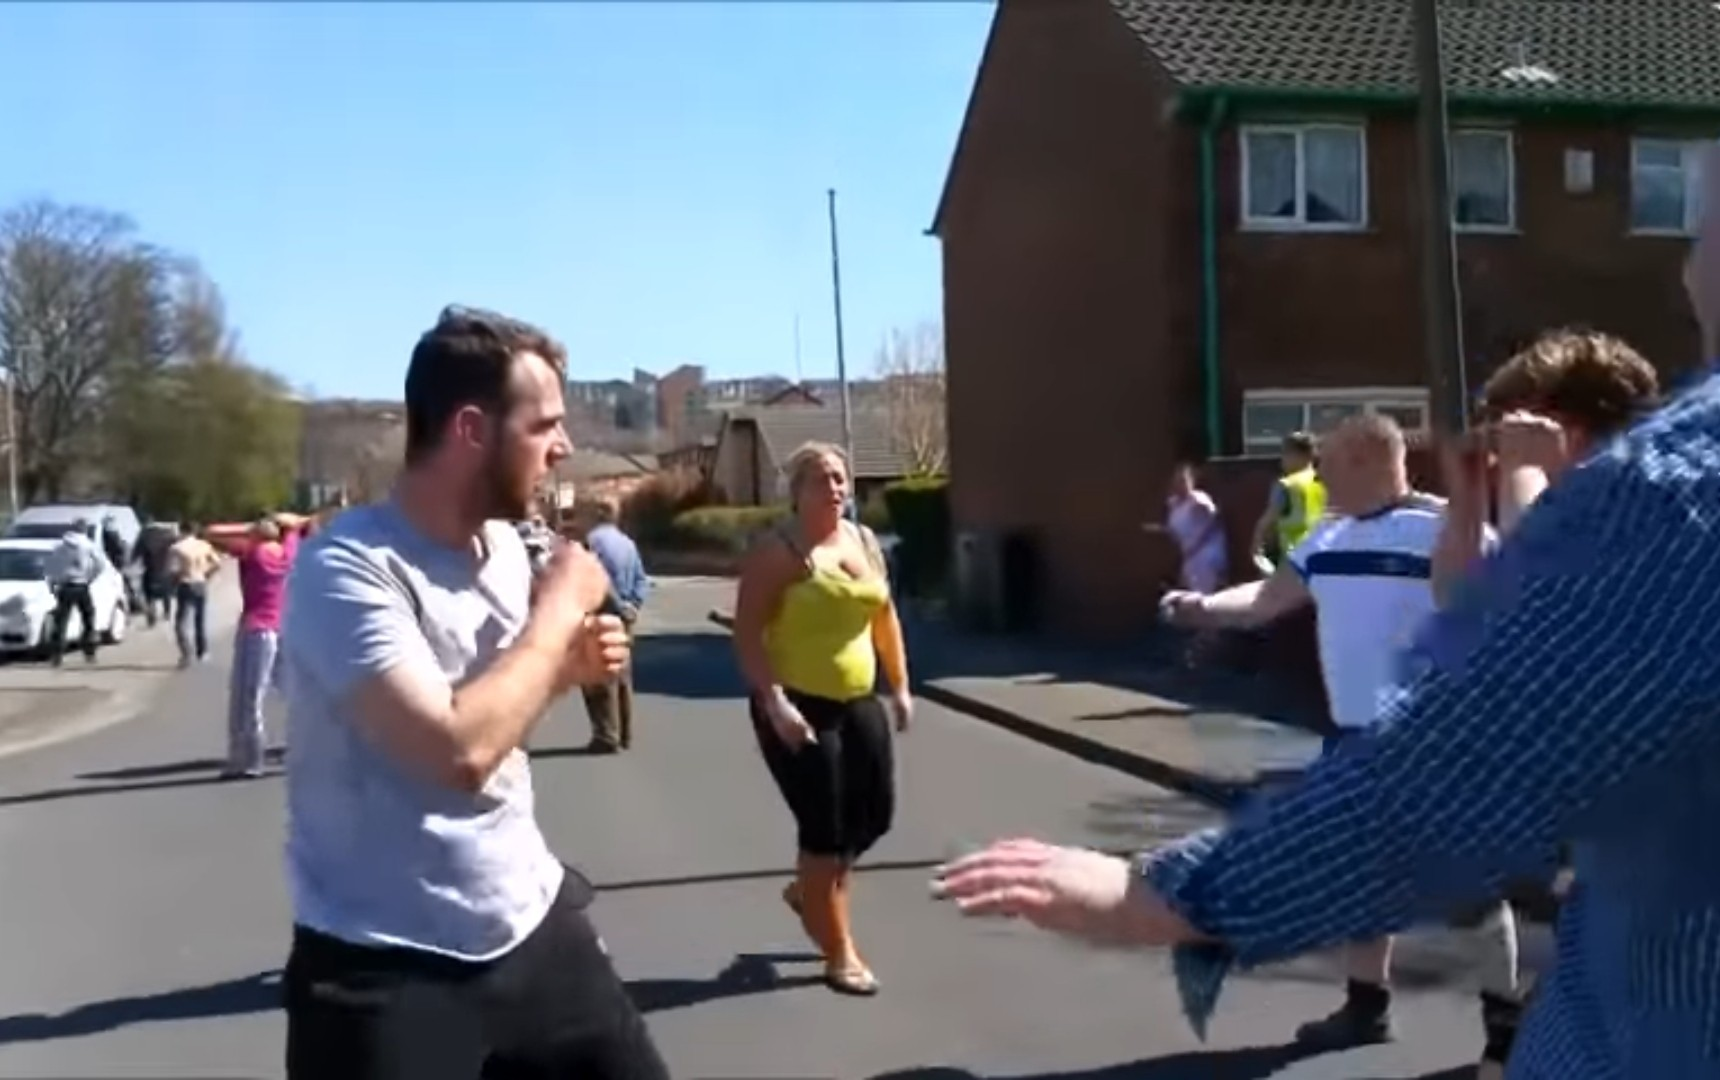 Sweeney v Paddy Doran – do krwi